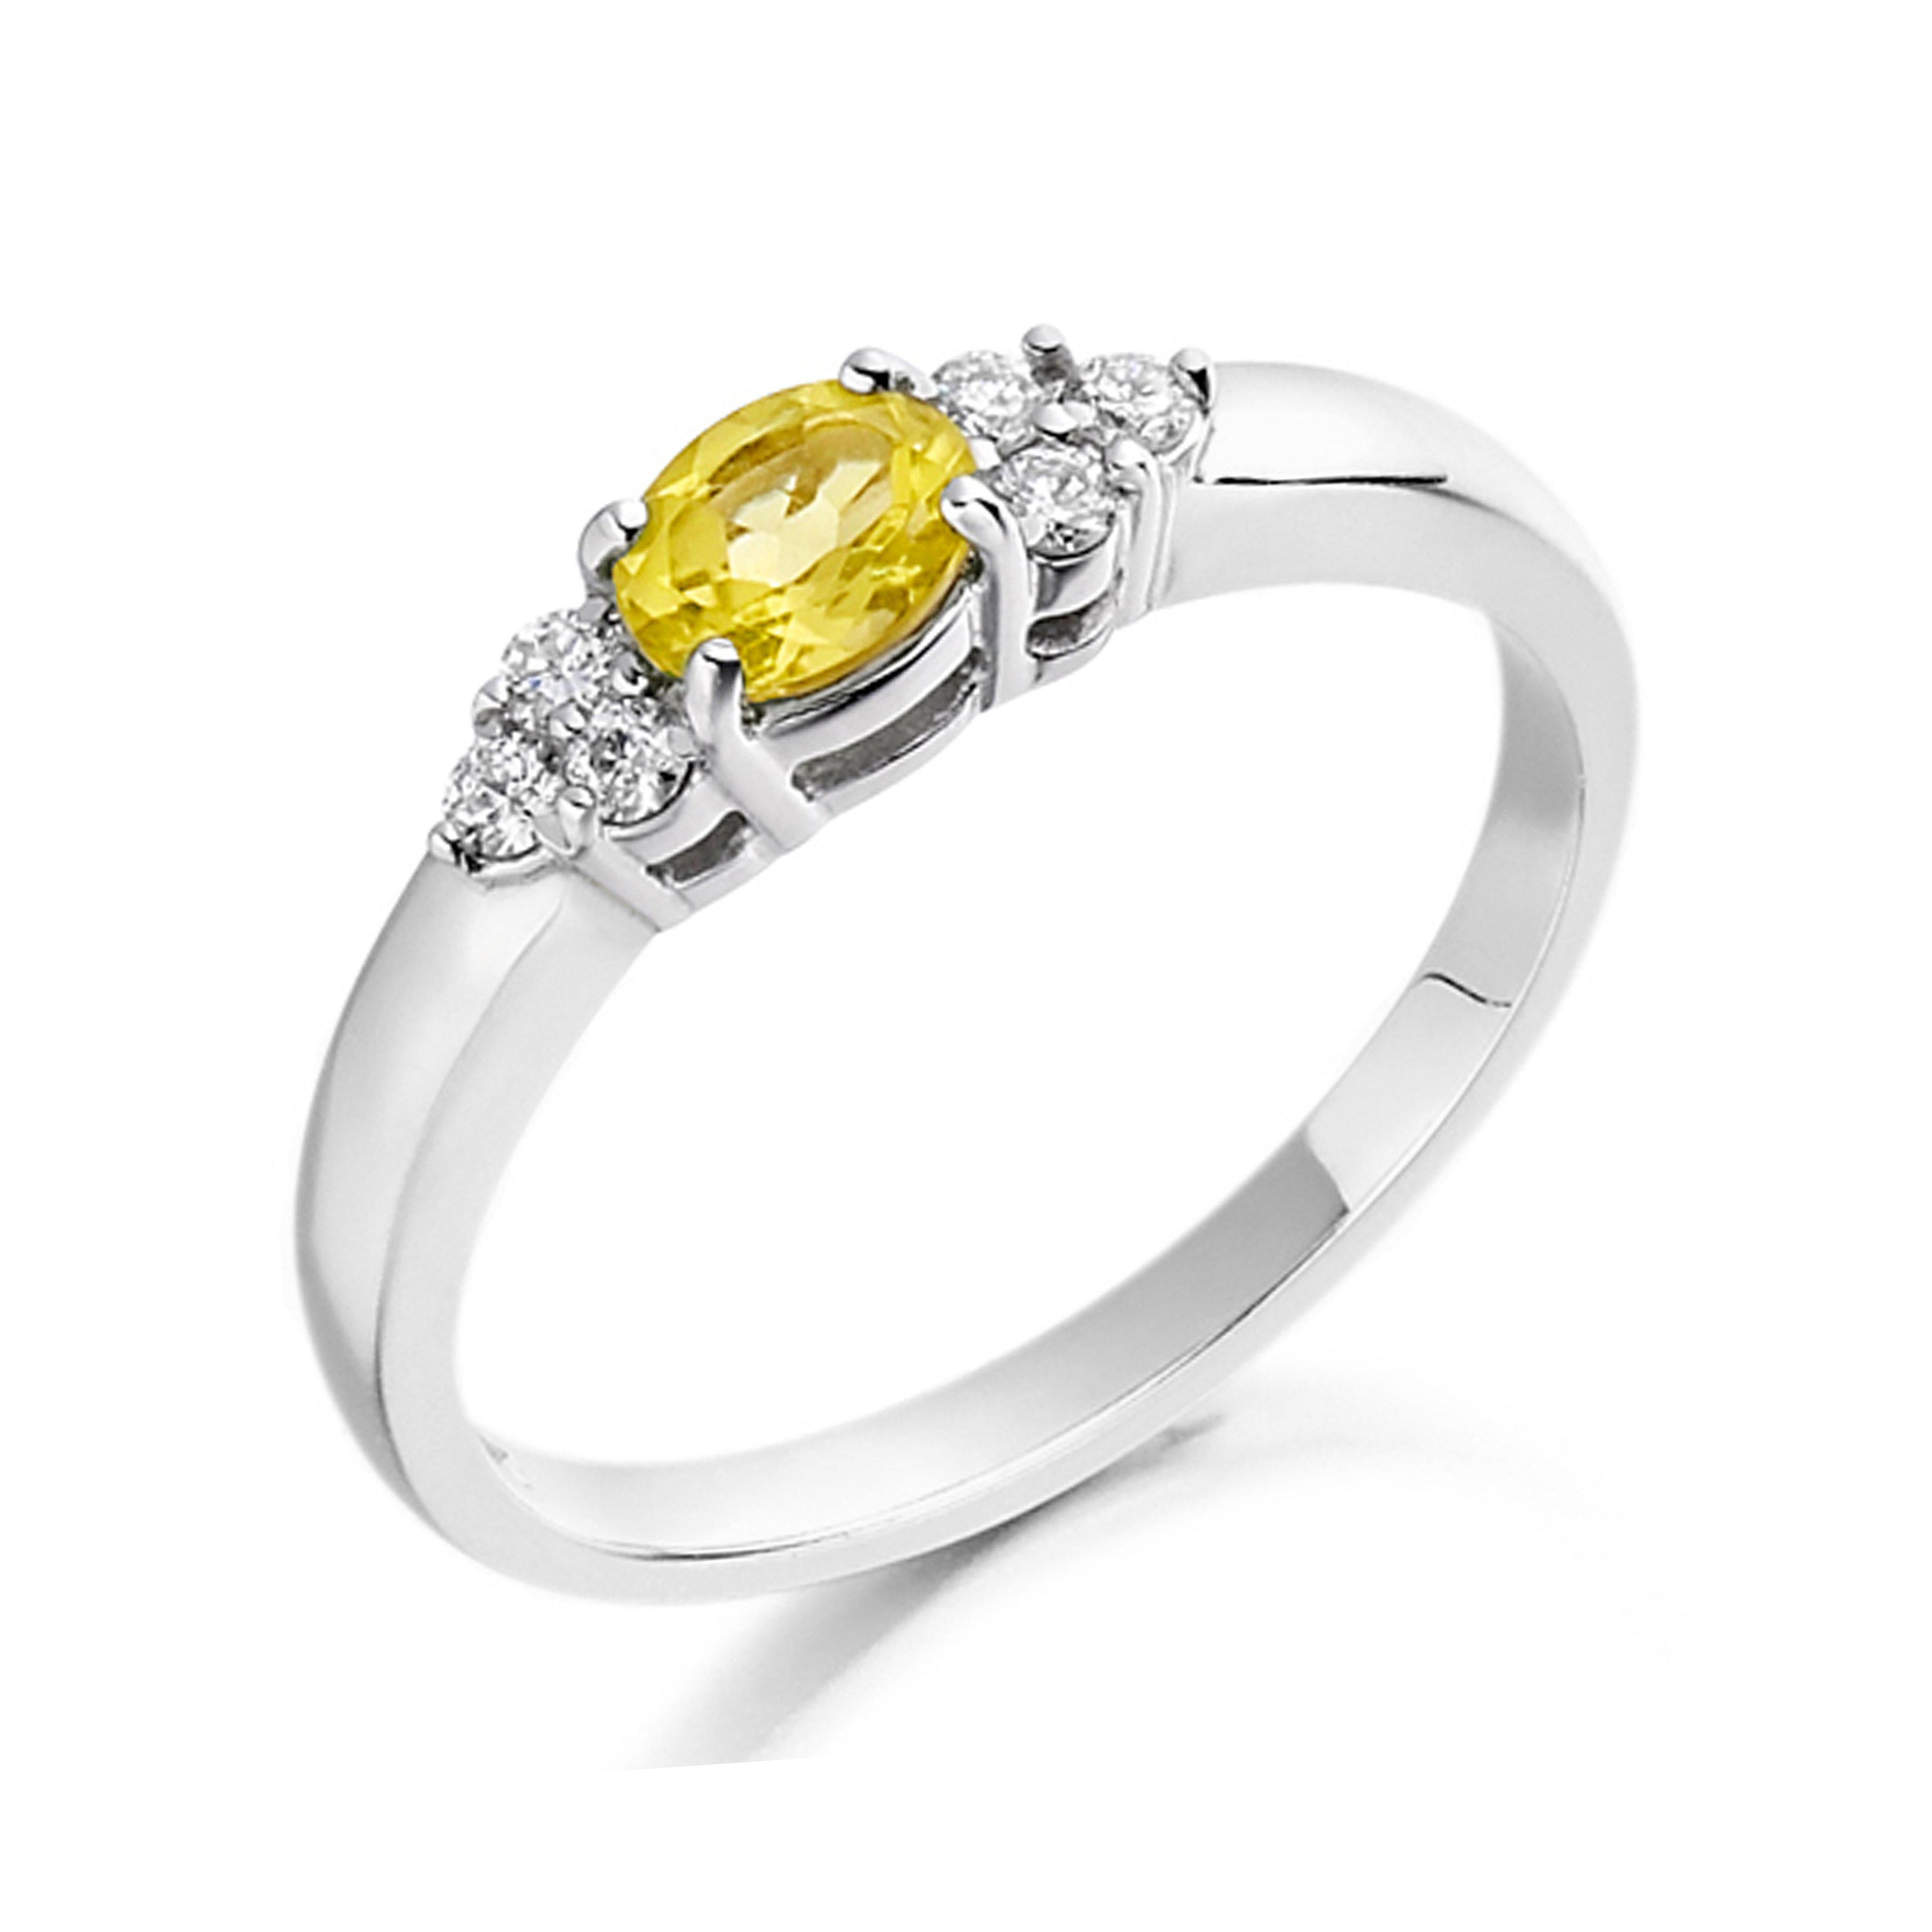 Oval 4 Prong Rope Band Solitaire Diamond Engagement Rings